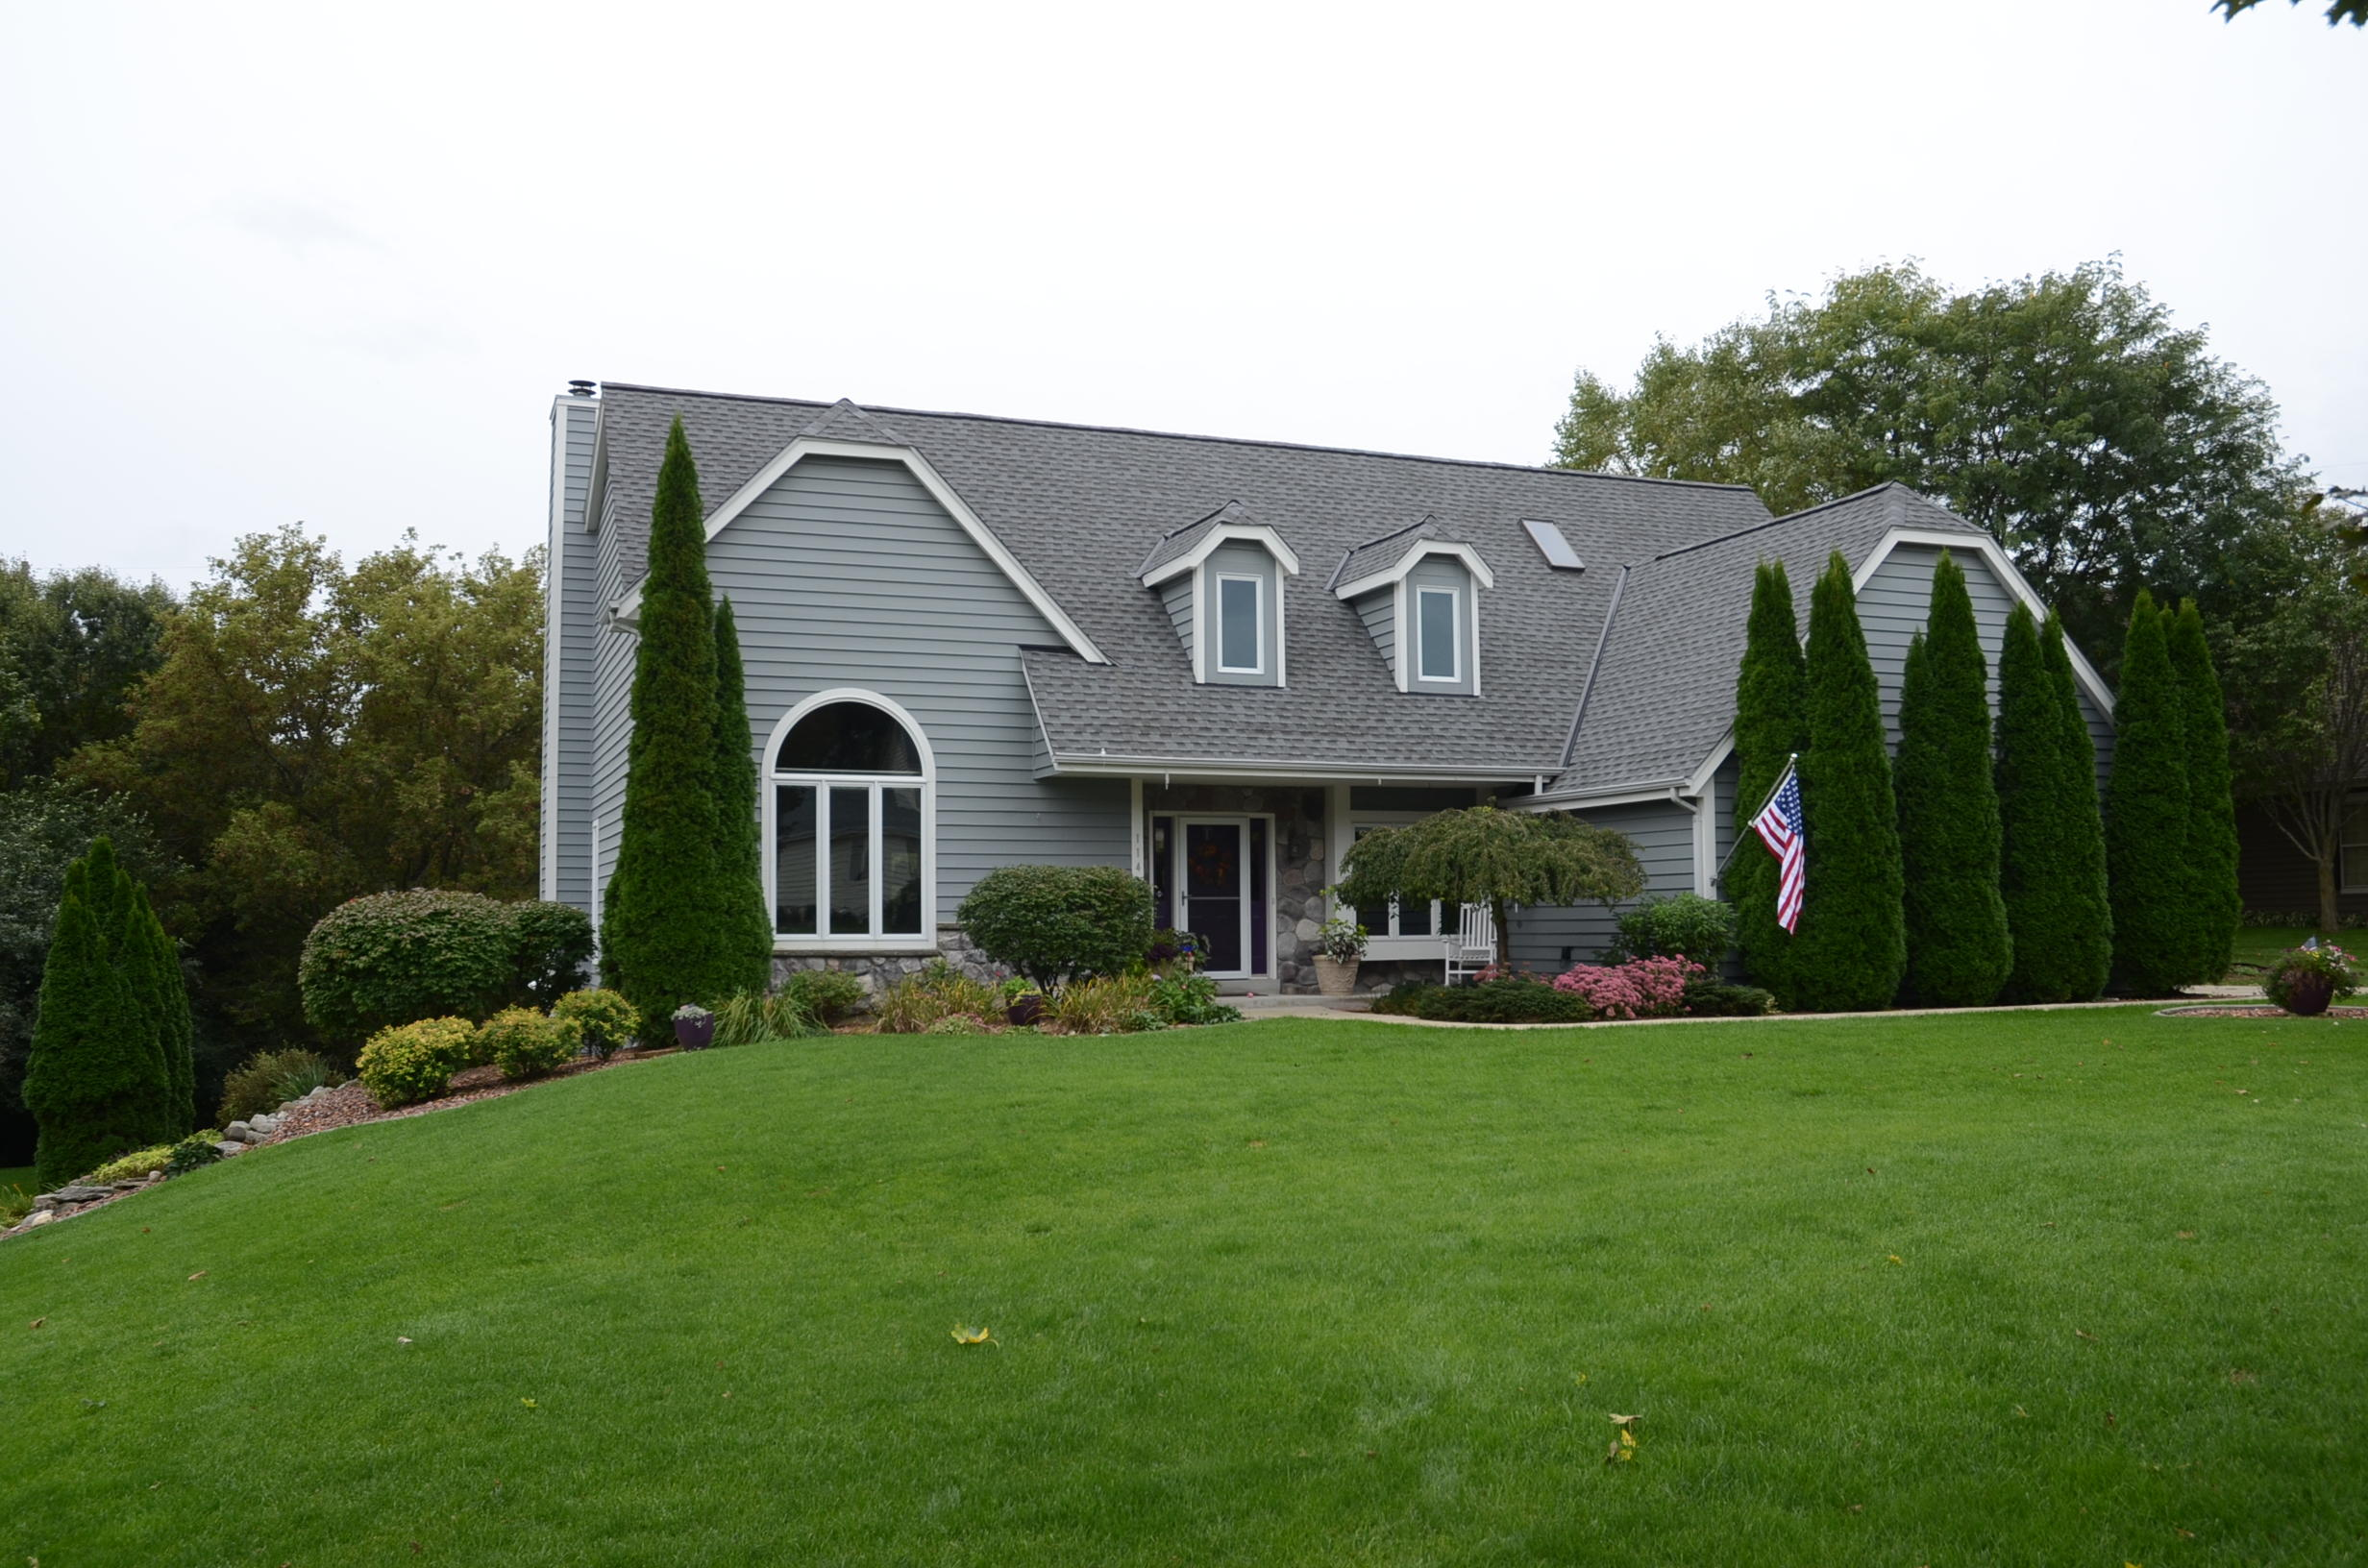 1143 Forseth Dr, Hartland, Wisconsin 53029, 5 Bedrooms Bedrooms, 14 Rooms Rooms,3 BathroomsBathrooms,Single-Family,For Sale,Forseth Dr,1609116